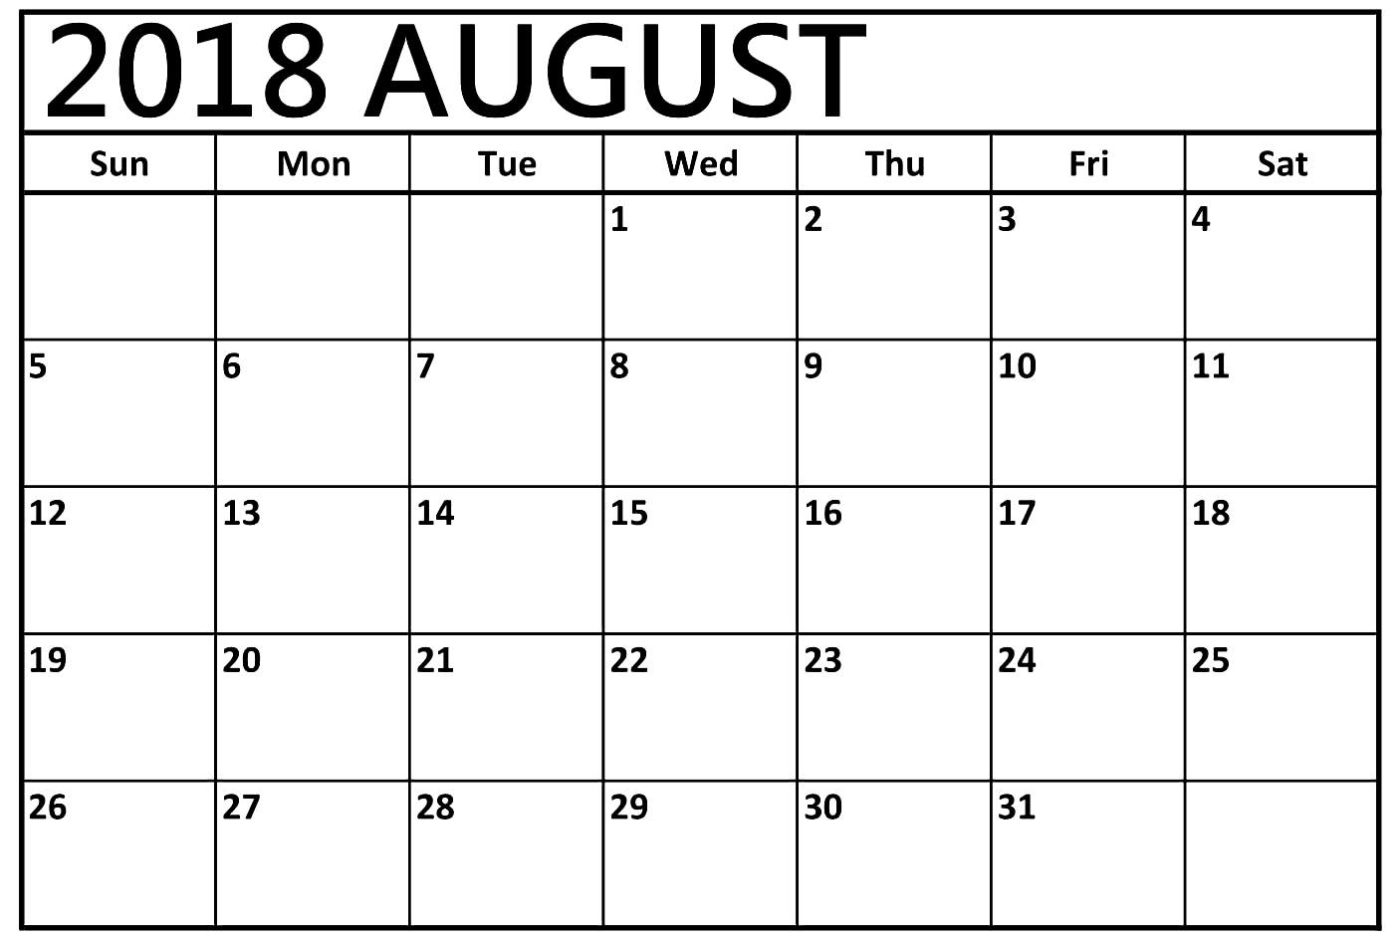 Calendar August 2018 Uk Us erdferdf